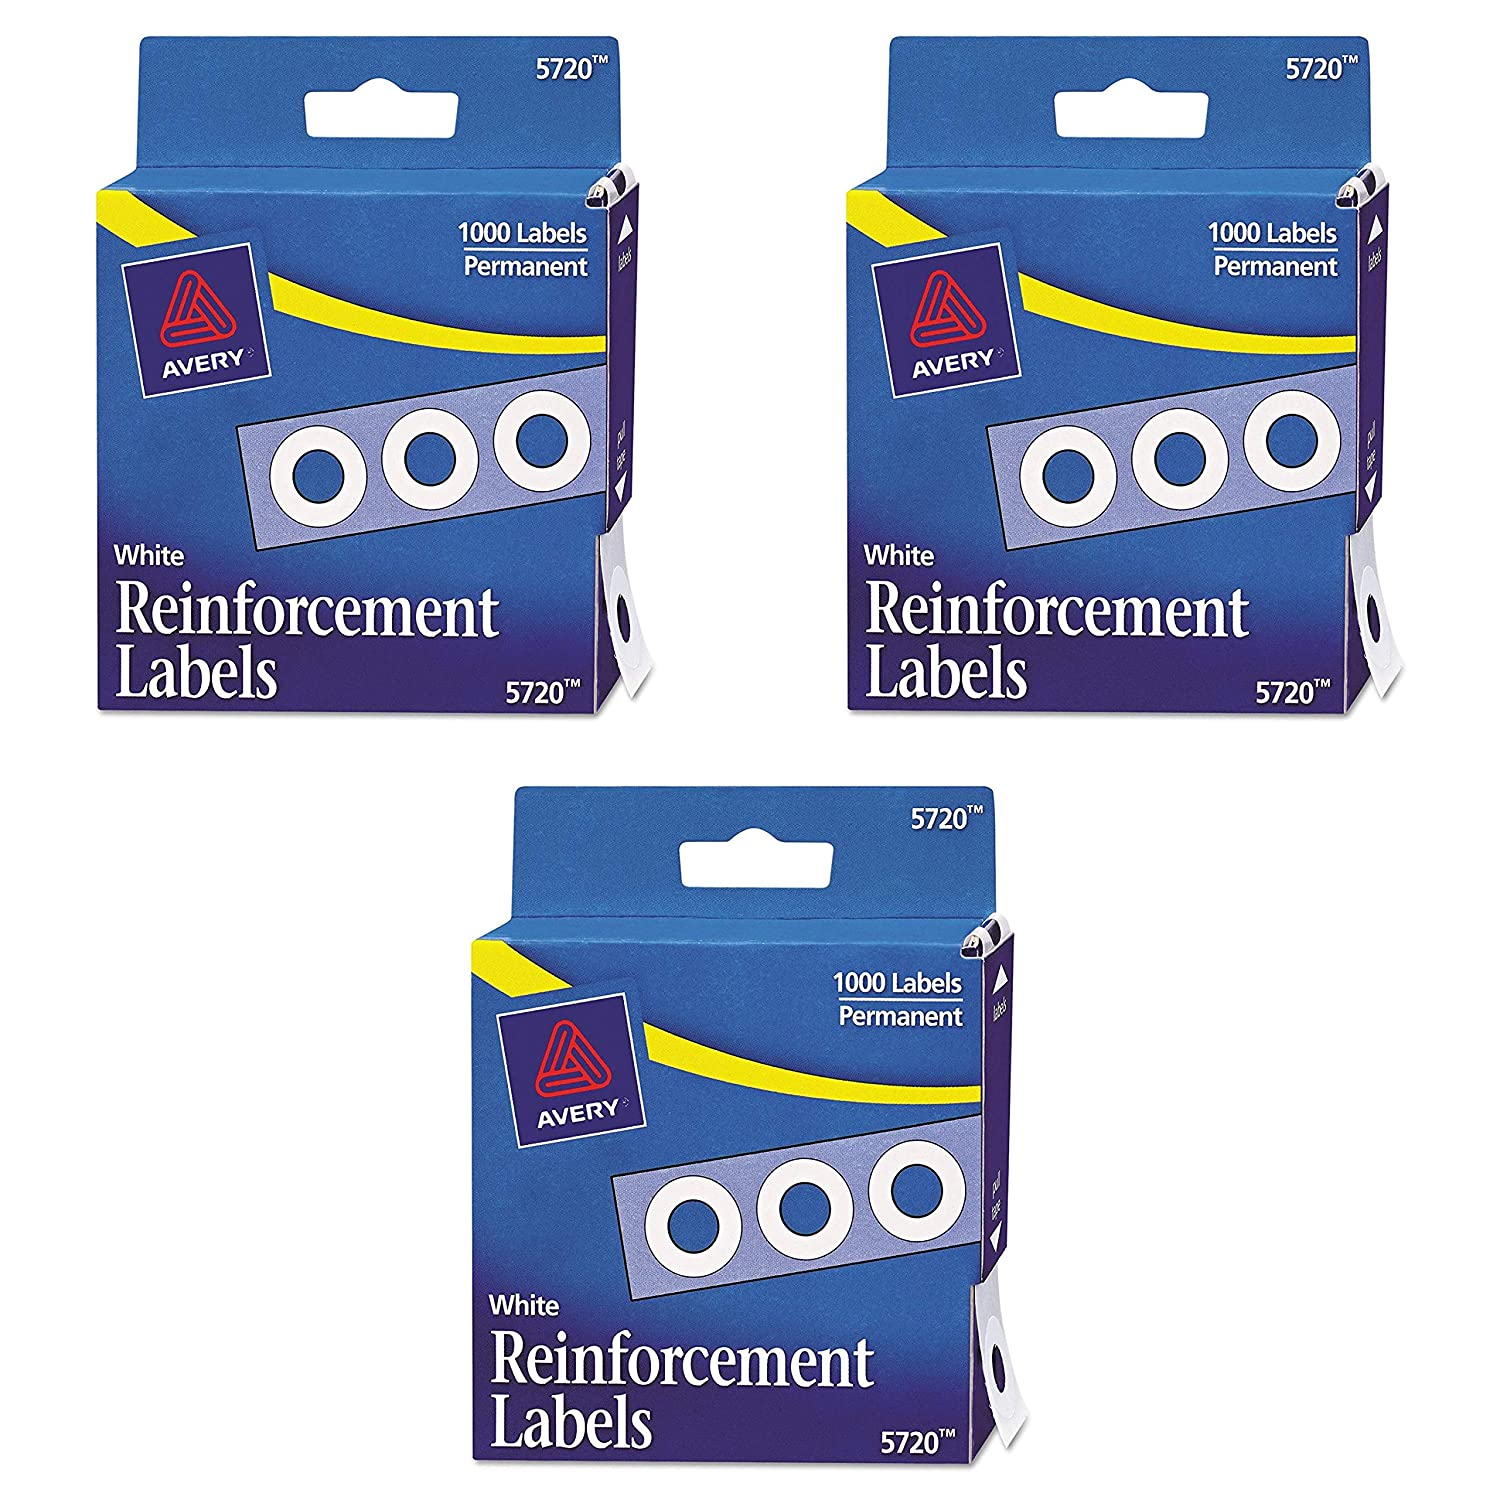 White AVE05720 Pack of 2 Avery Hole Reinforcements 1000//Pack PK